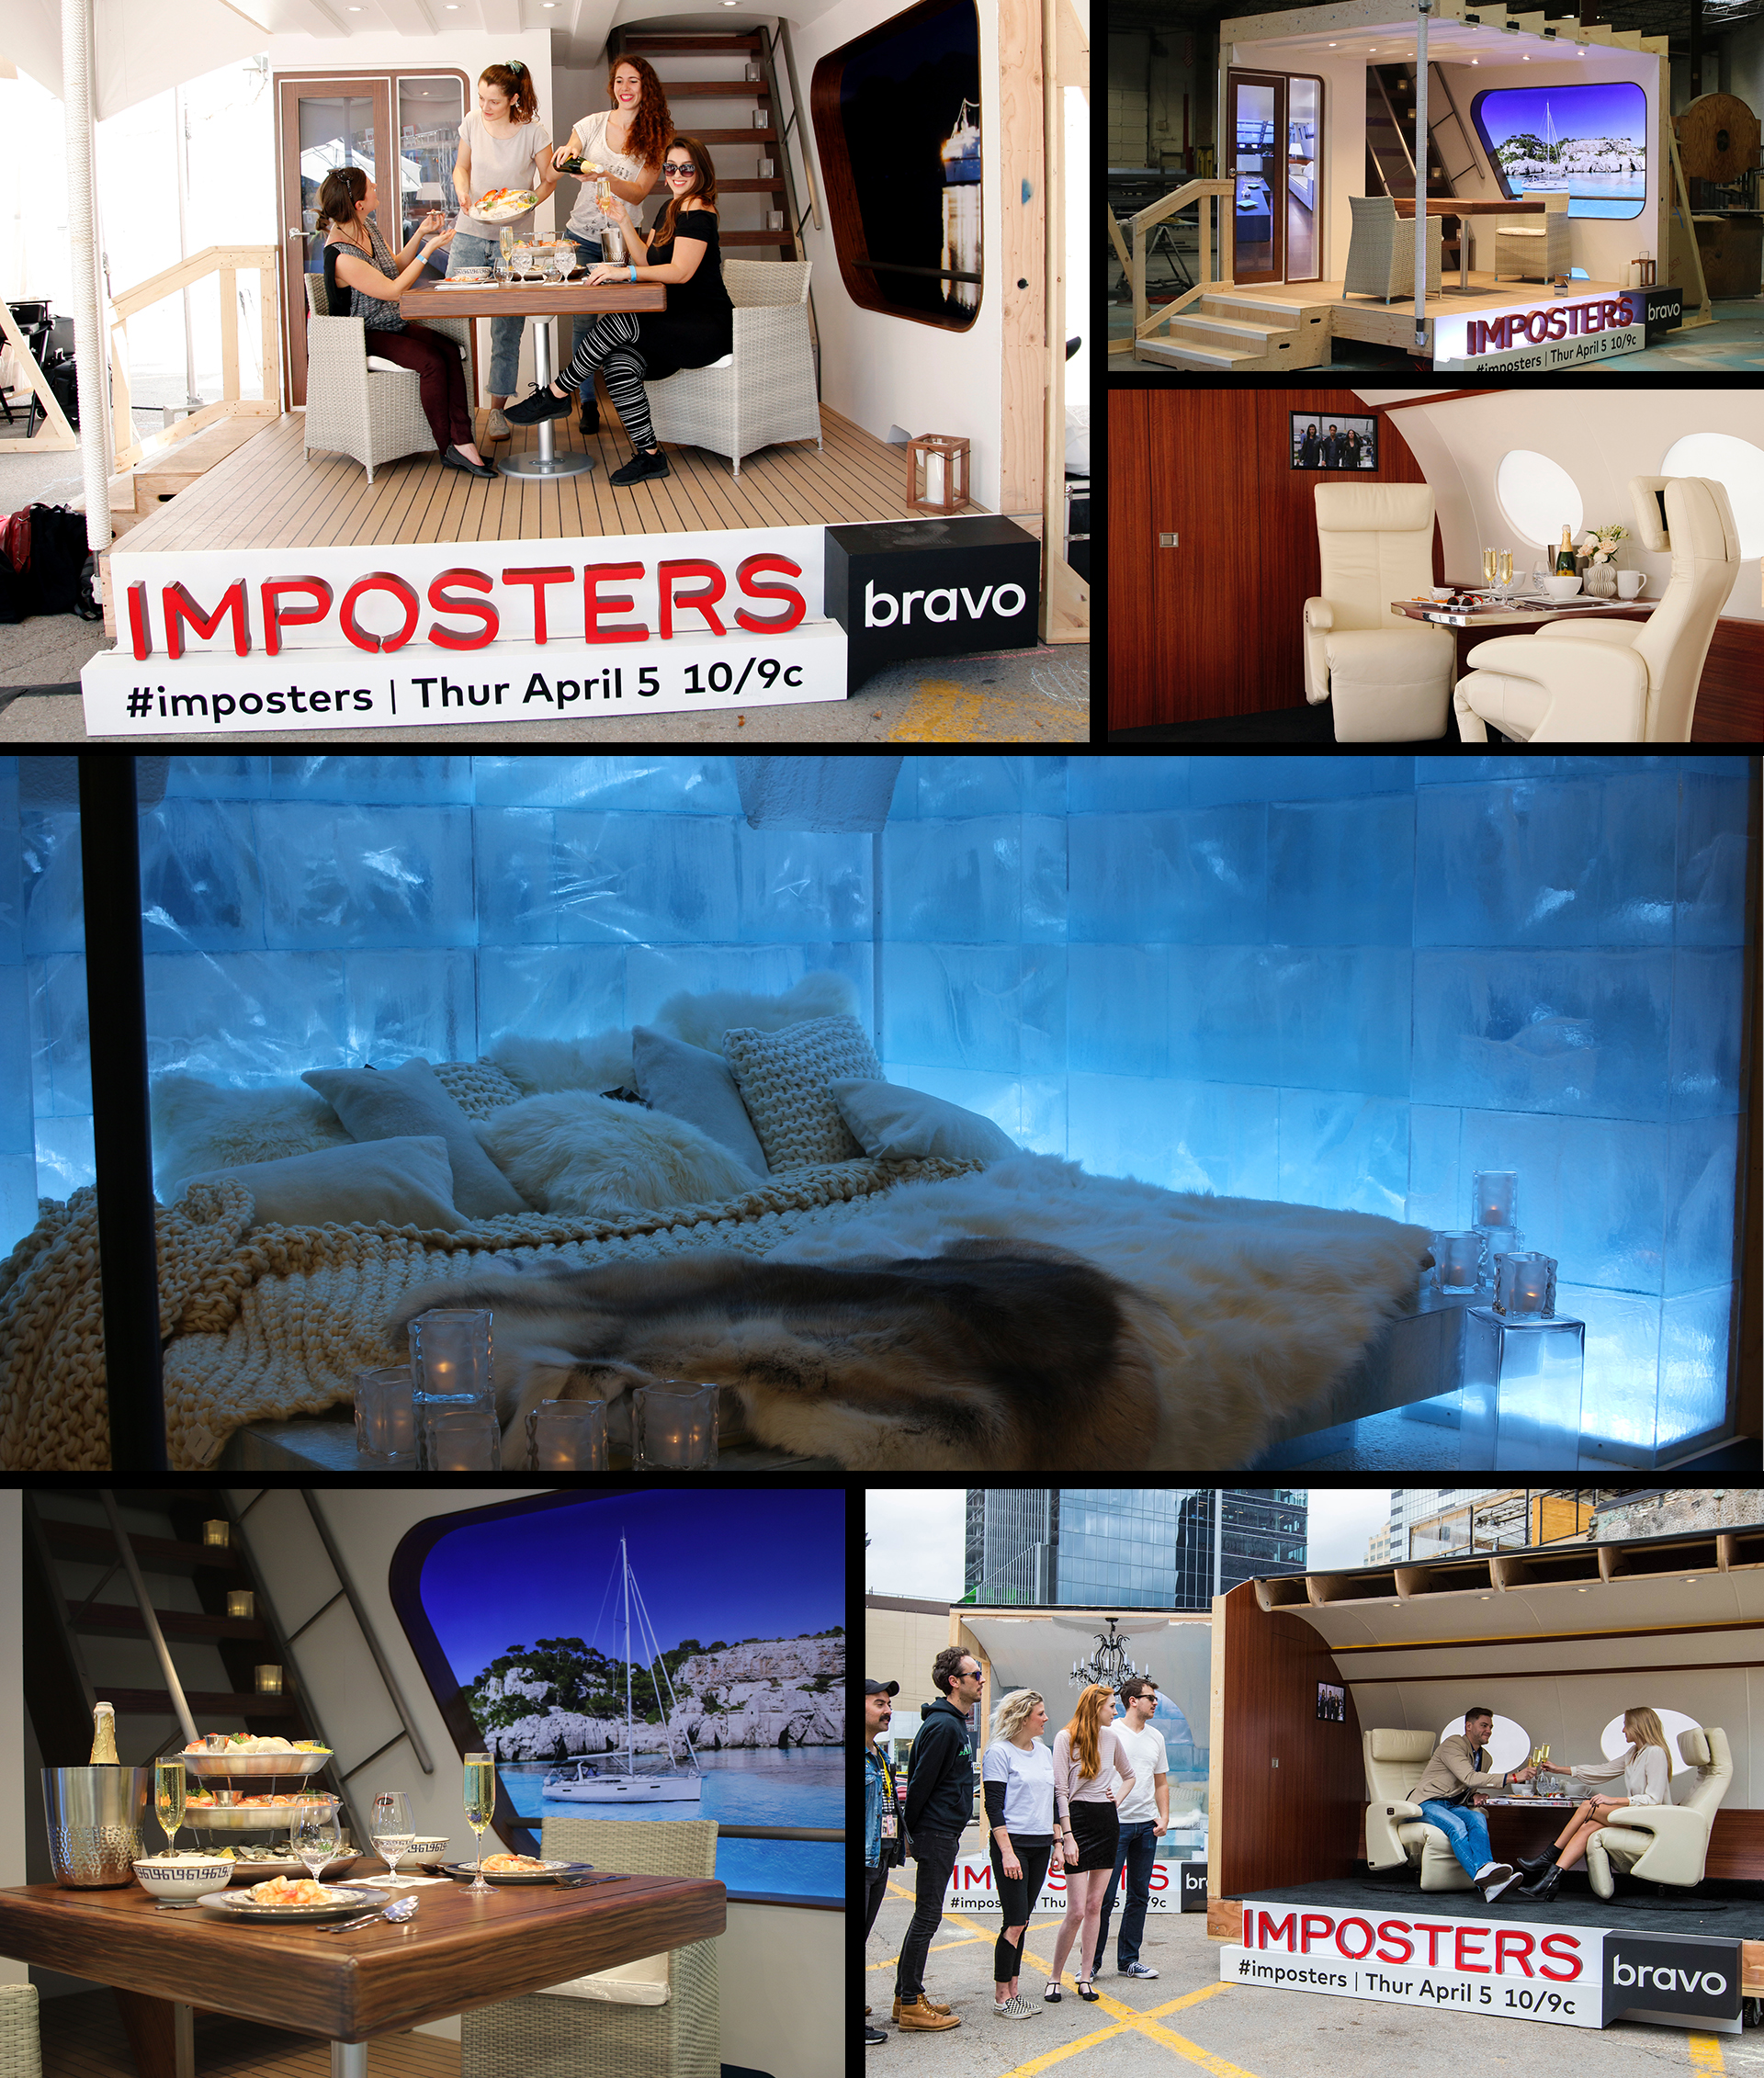 Marketing Activation Fabrication for SXSW - Bravo Imposters